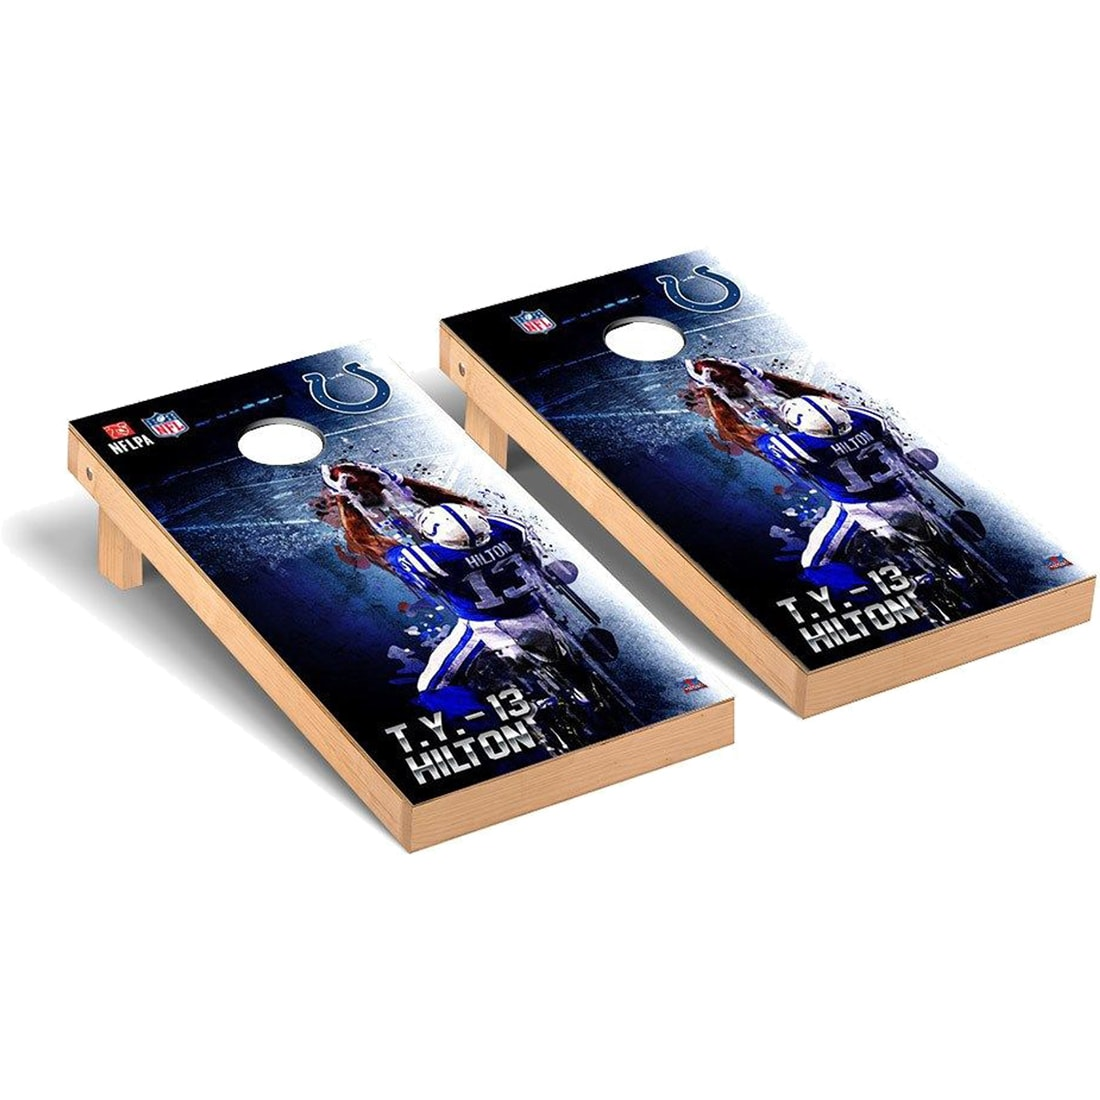 T.Y. Hilton Indianapolis Colts 2' x 4' NFLPA Player Cornhole Board Tailgate Toss Set